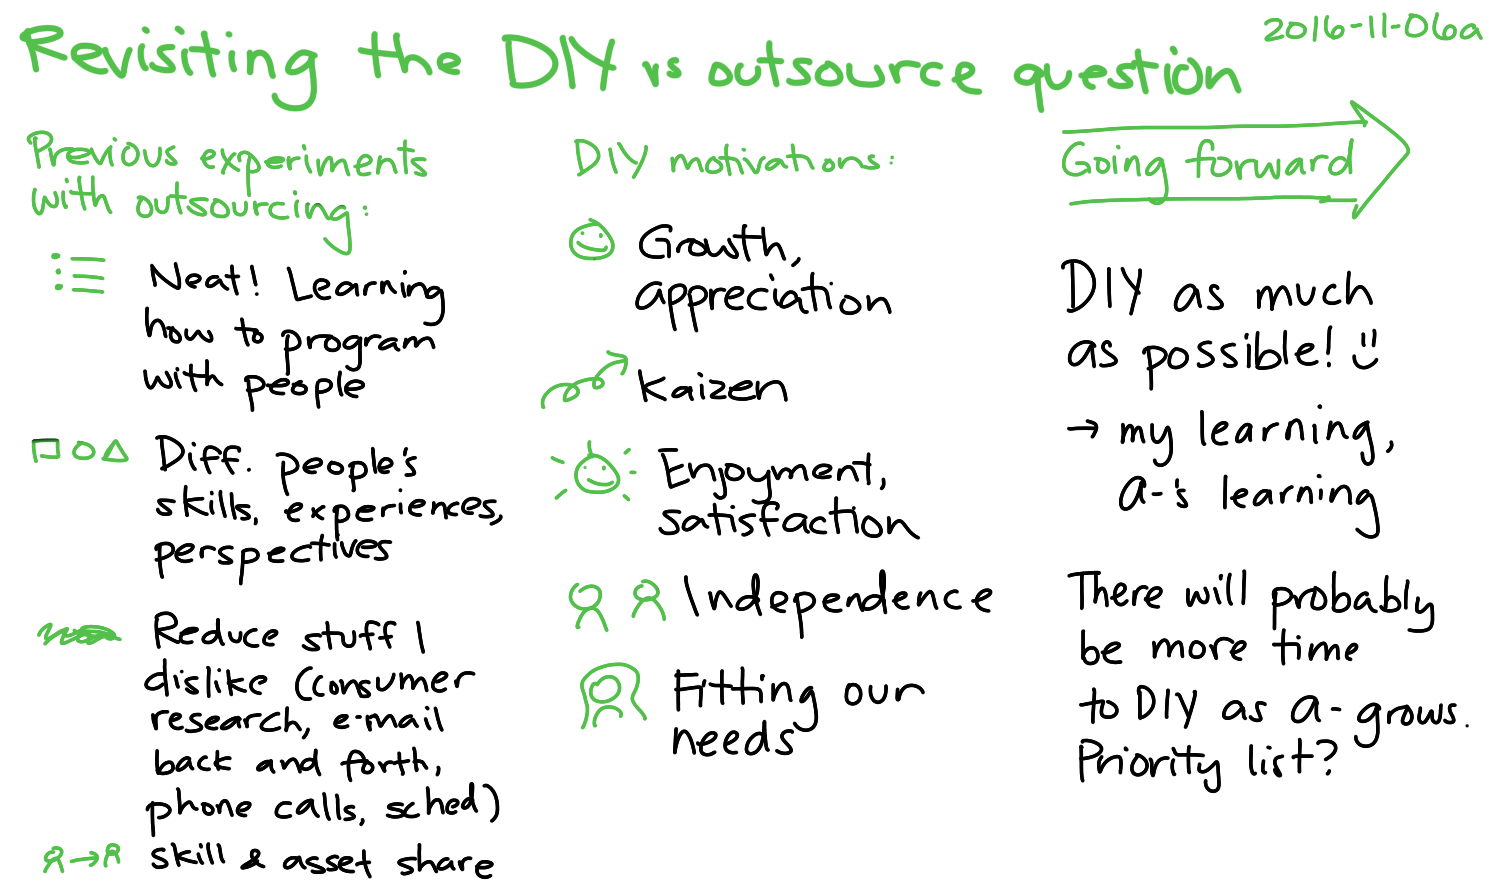 2016-11-06a Revisiting the DIY vs outsource question #outsourcing #diy.png